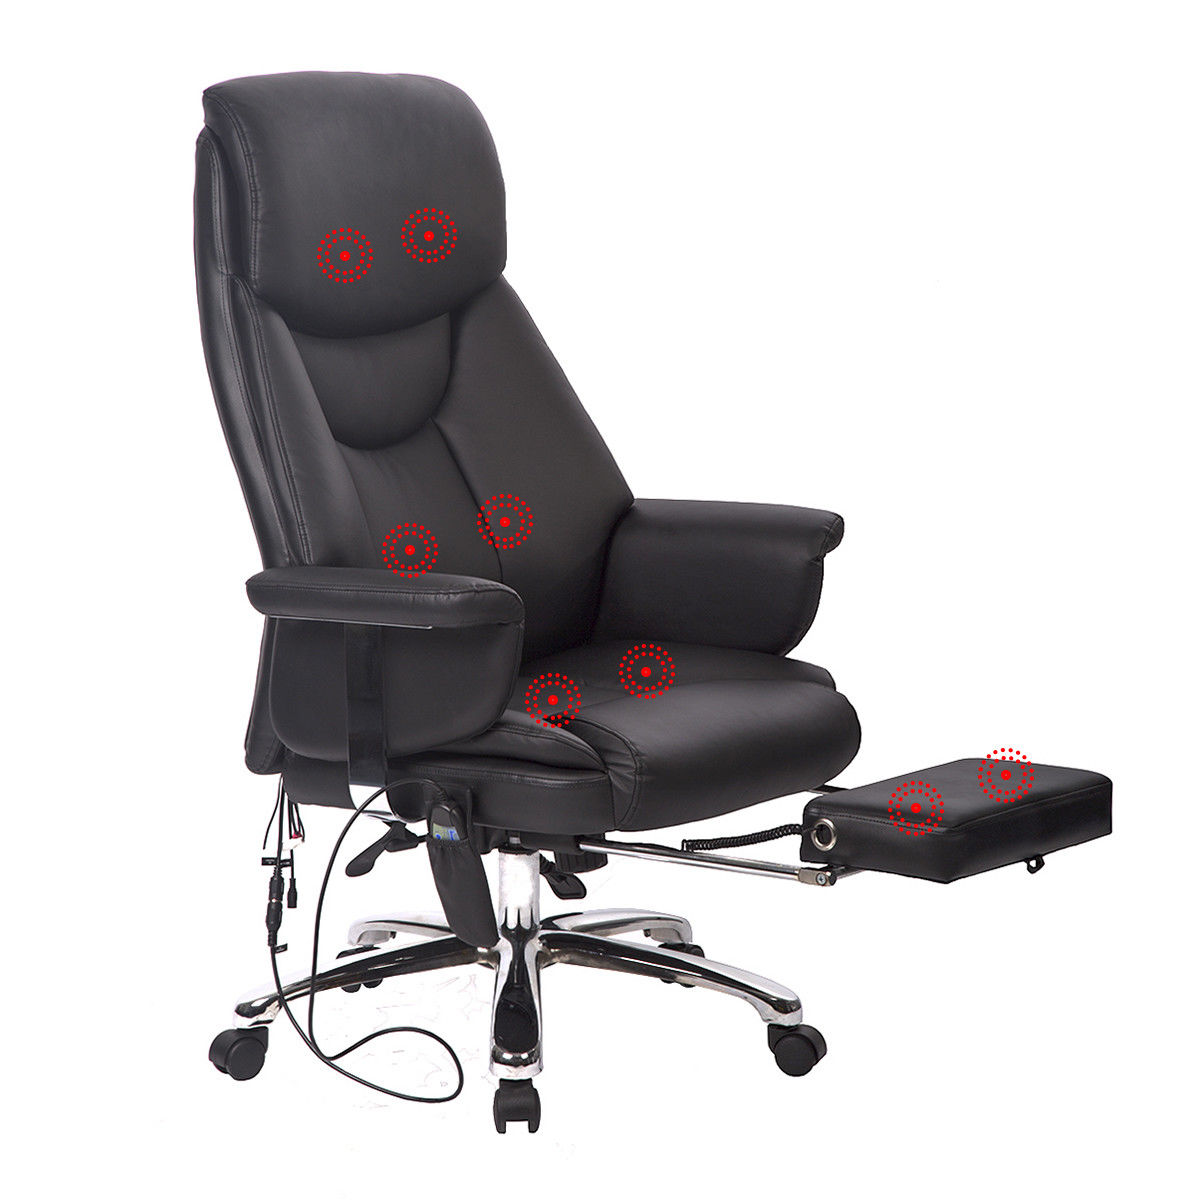 Executive Office Massage Chair Vibrating Ergonomic Computer Desk Chair383Electric Massage Chairs